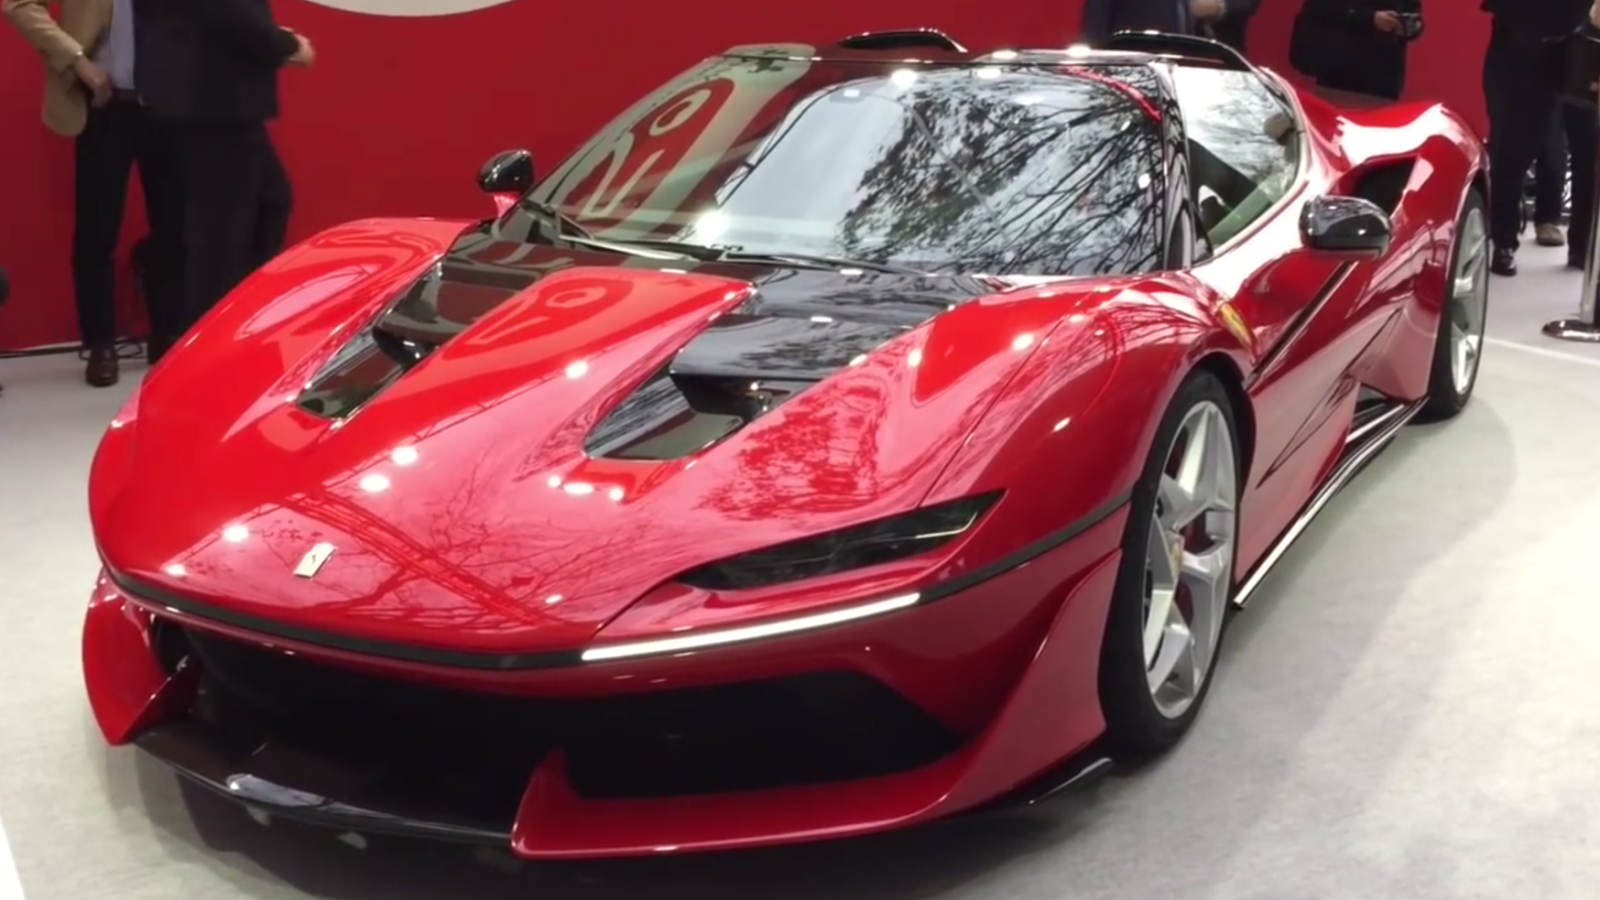 Ferrari 488 J50 hot cars are intimidating